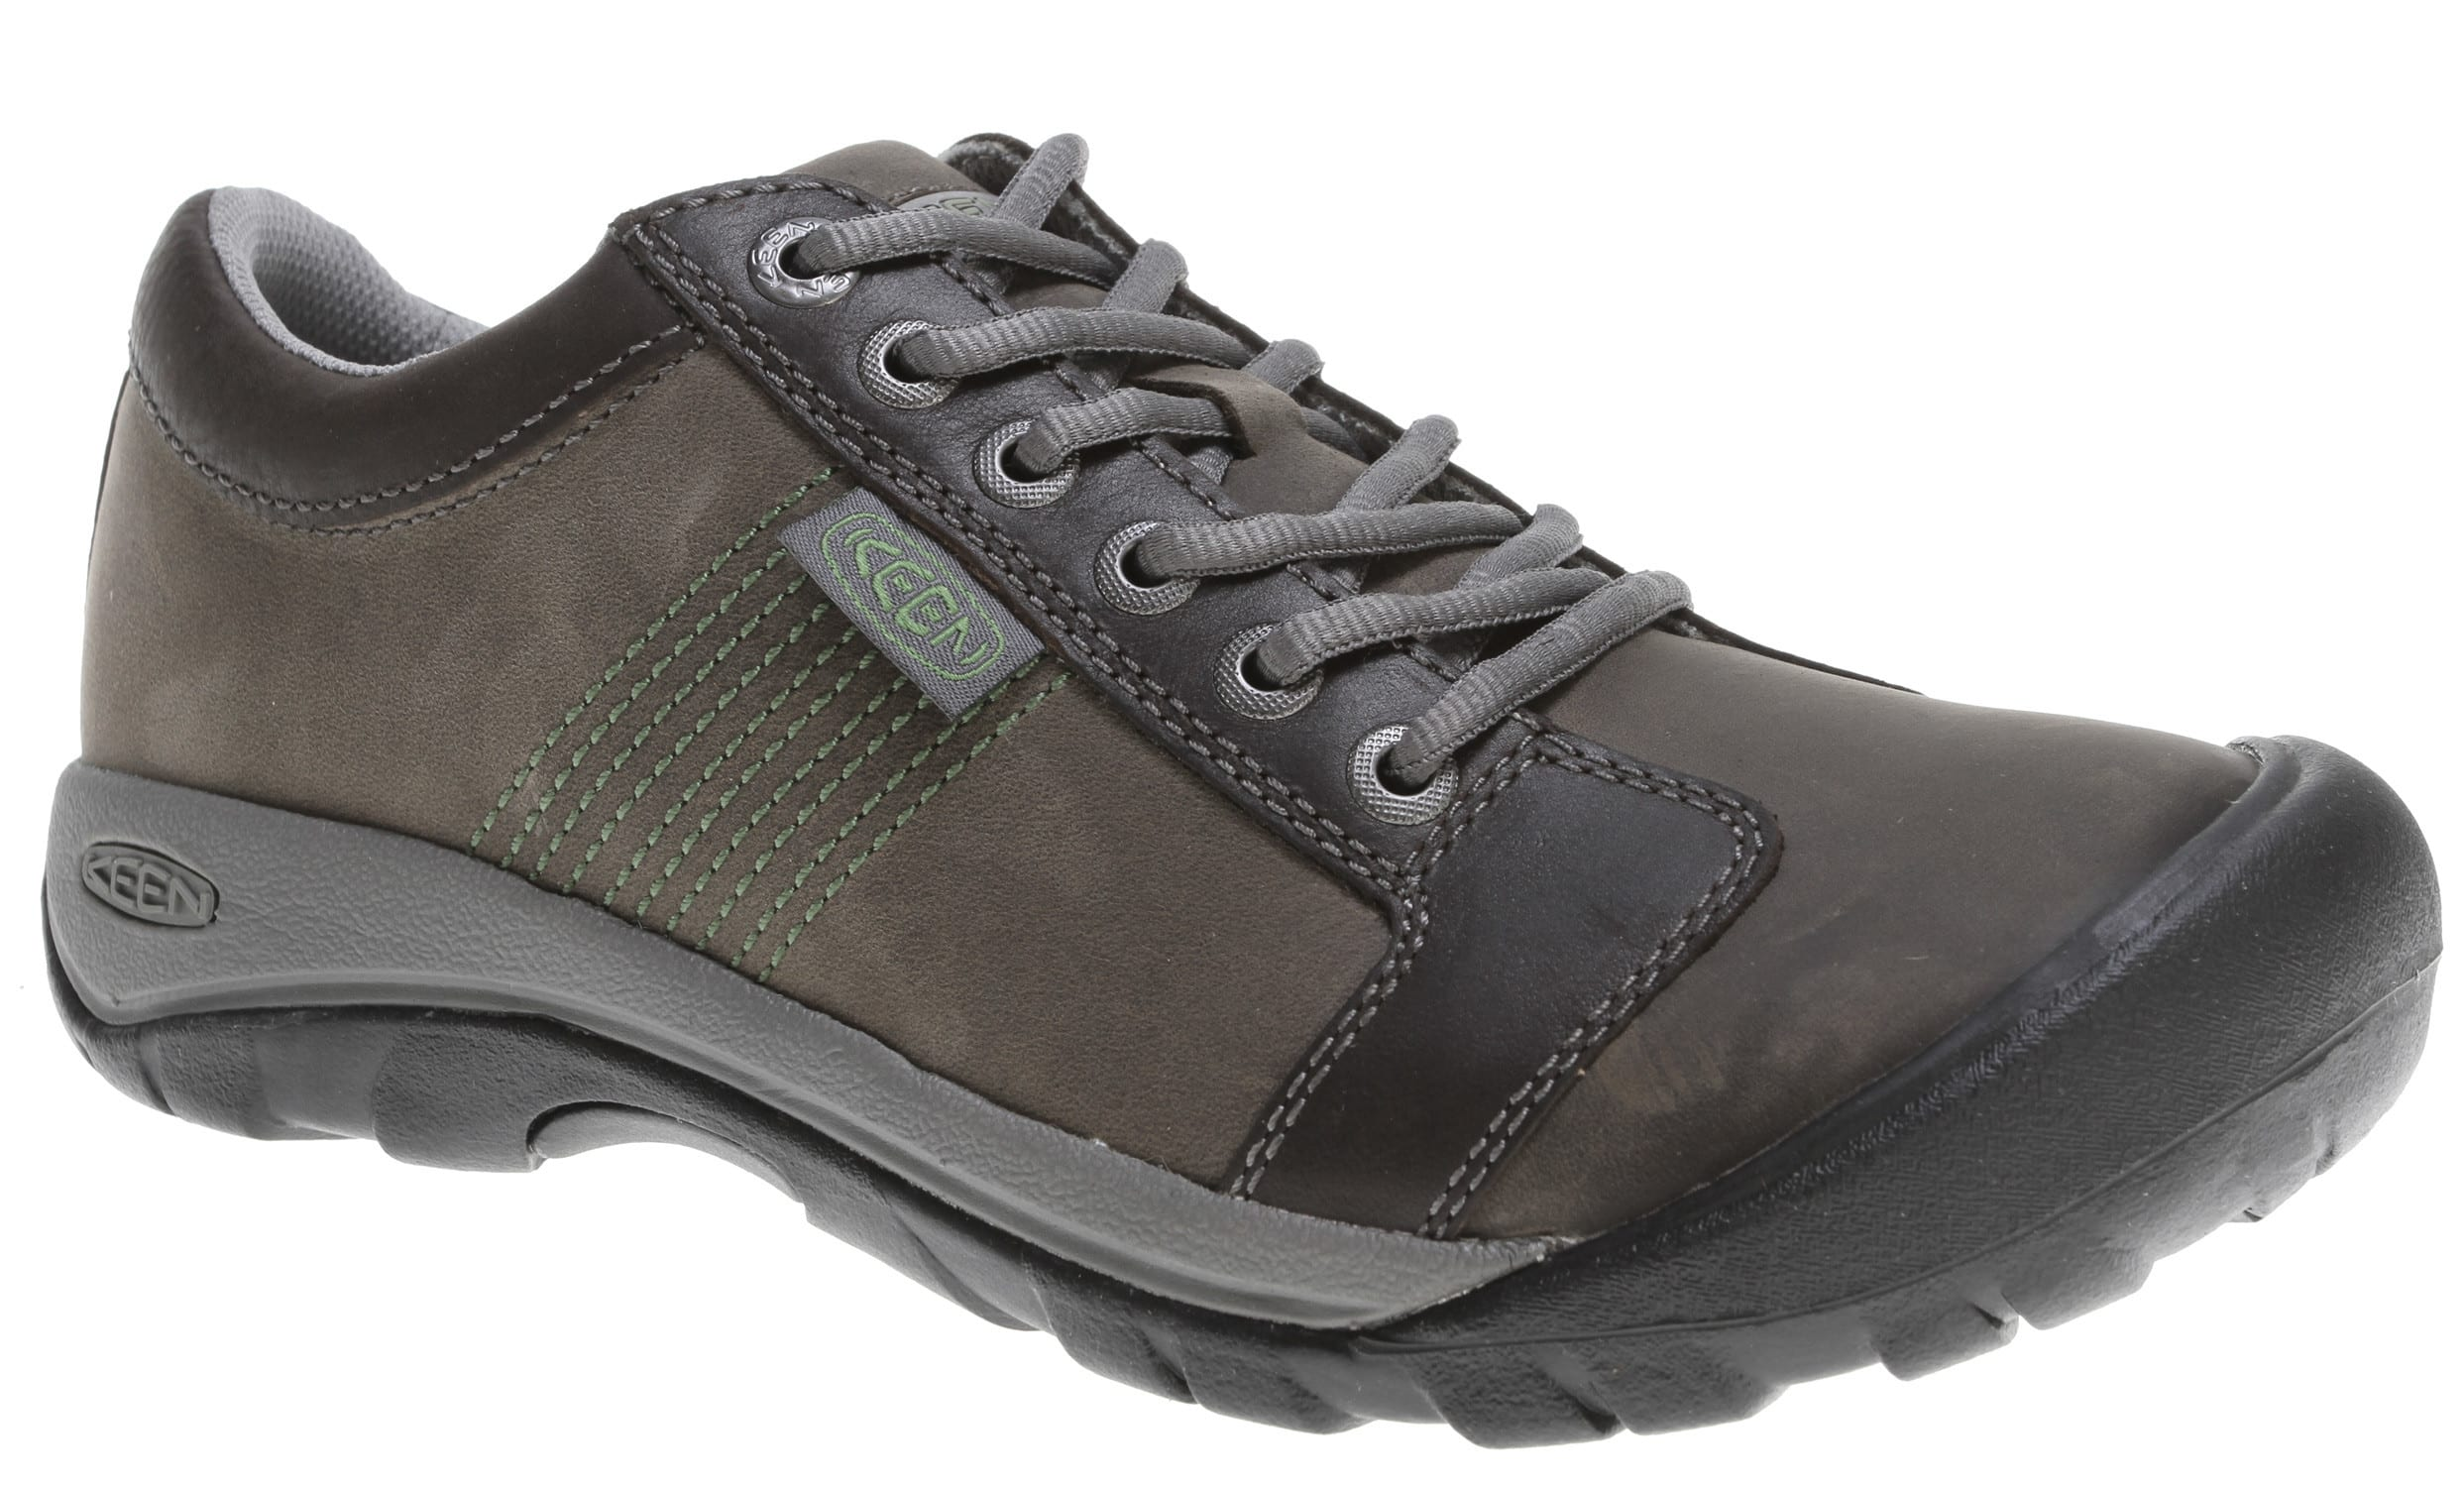 Keen Shoes Mens